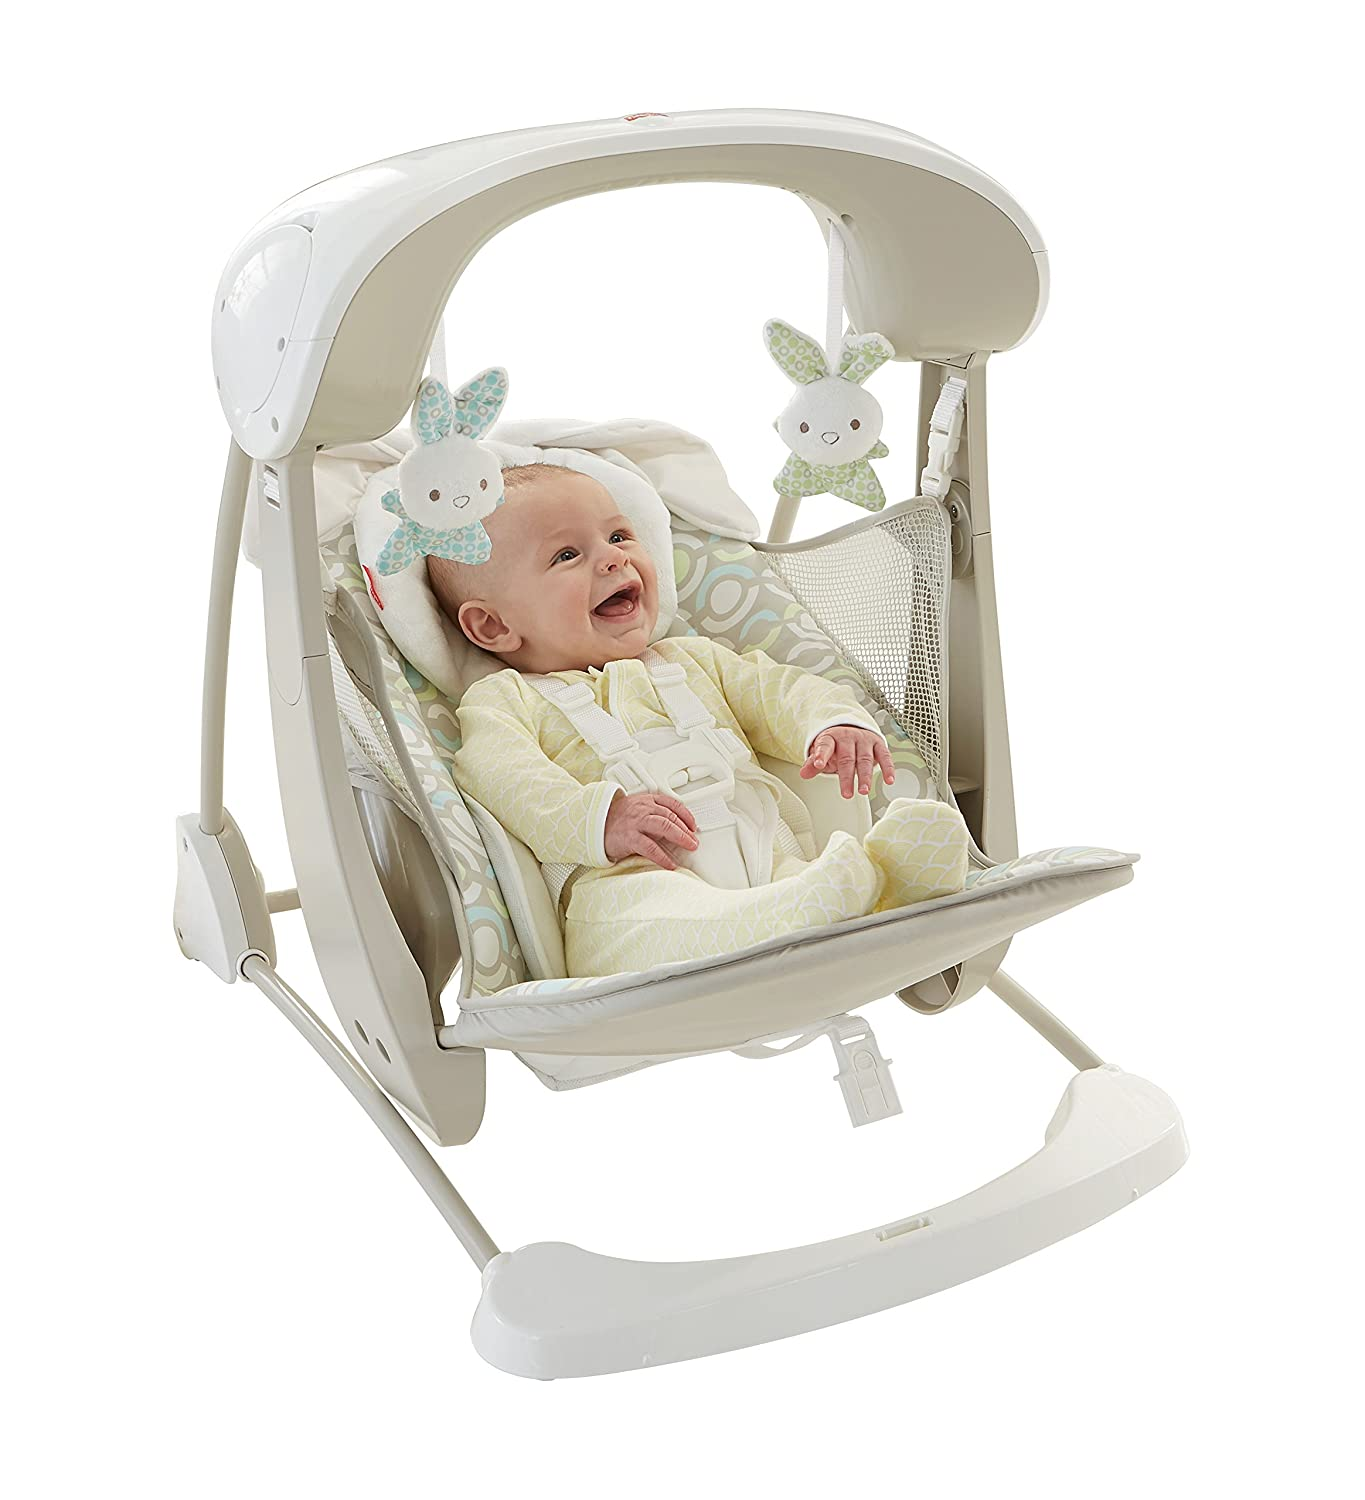 Fisher-Price Take-Along Swing and Seat DKD86